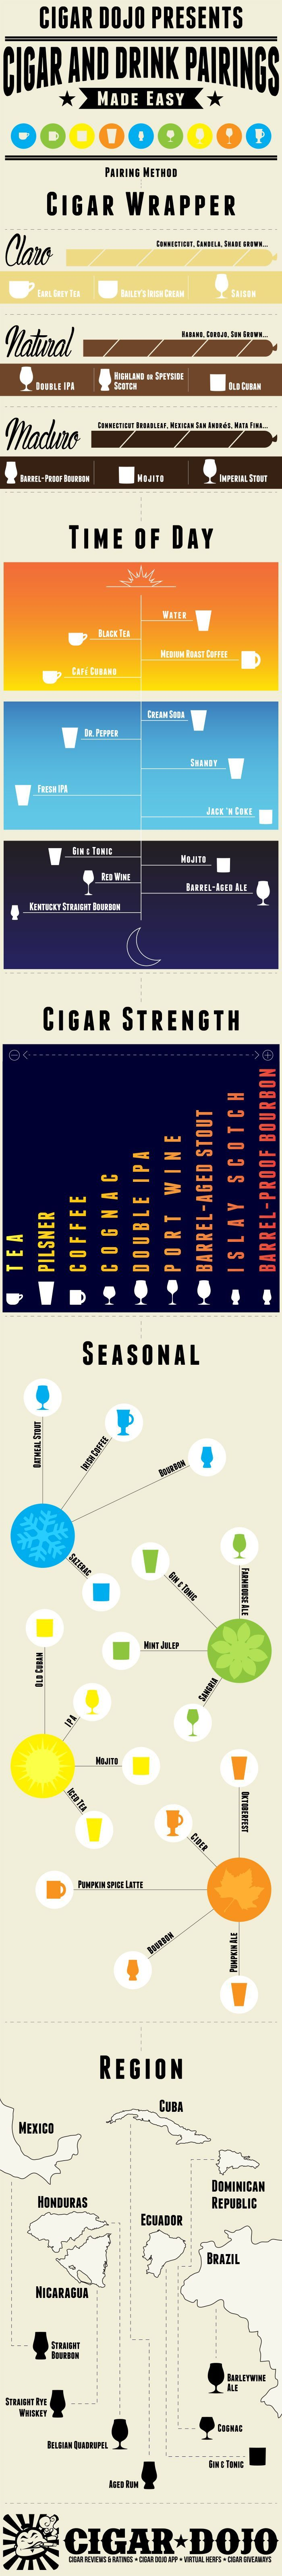 Cigar and Drink Pairings Infographic. If you ever need a quick reference on what drink to pair with your cigar, this infographic has it all! From pairings based on cigar wrapper, cigar strength, or even time of year.